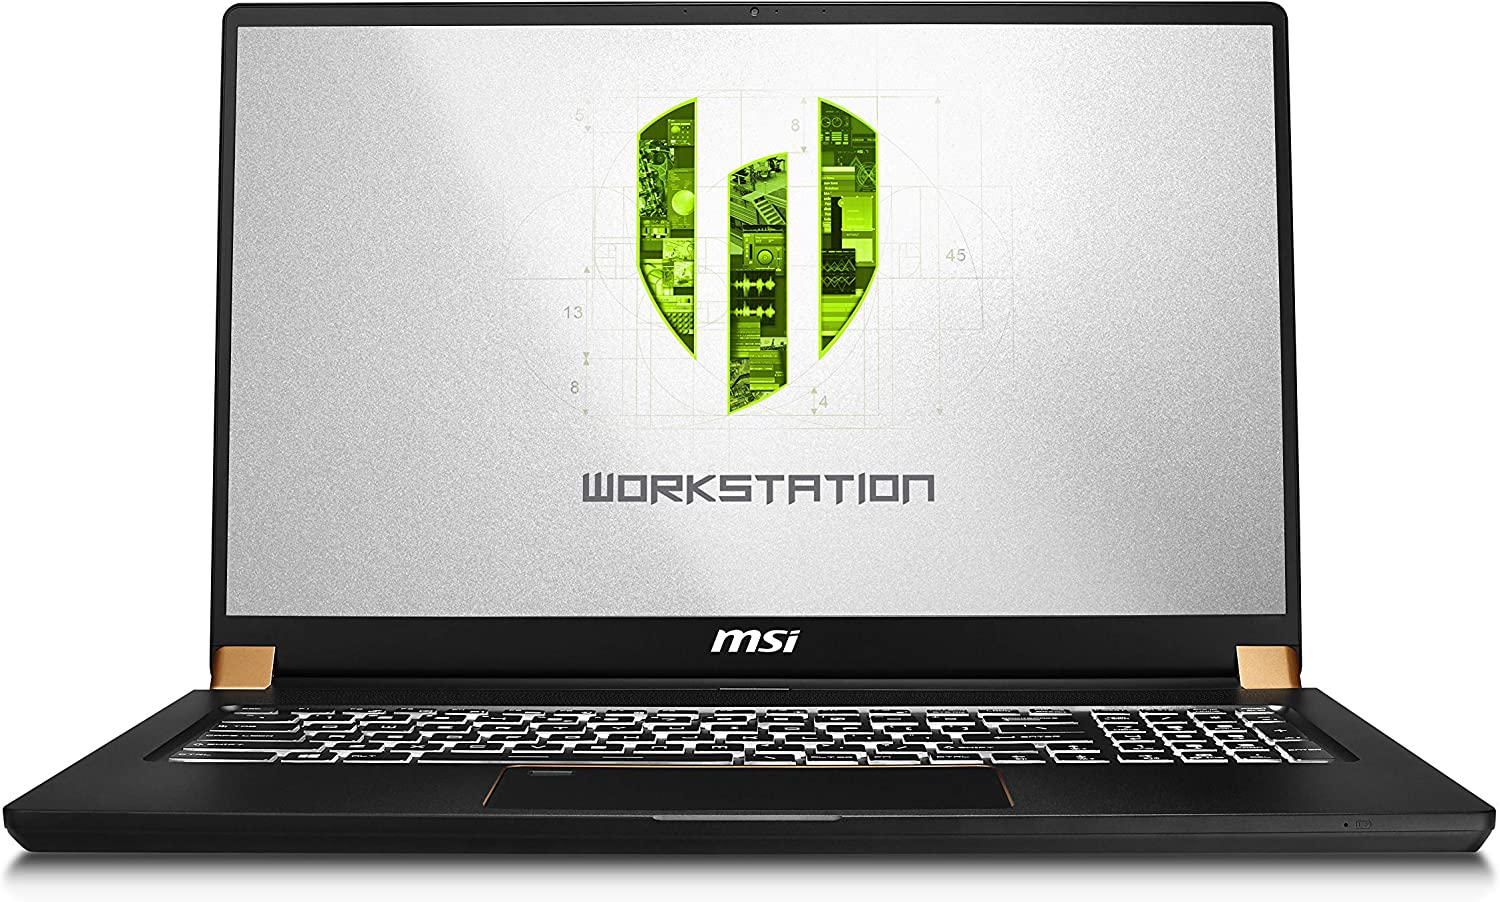 "MSI WS75 9TL-497 17.3"" FHD Thin and Light Mobile Workstation Intel Core i7-9750H Quadro RTX 4000 32GB 512G NVMe SSD Win10 Pro TPM2.0 TB3 Fingerprint"